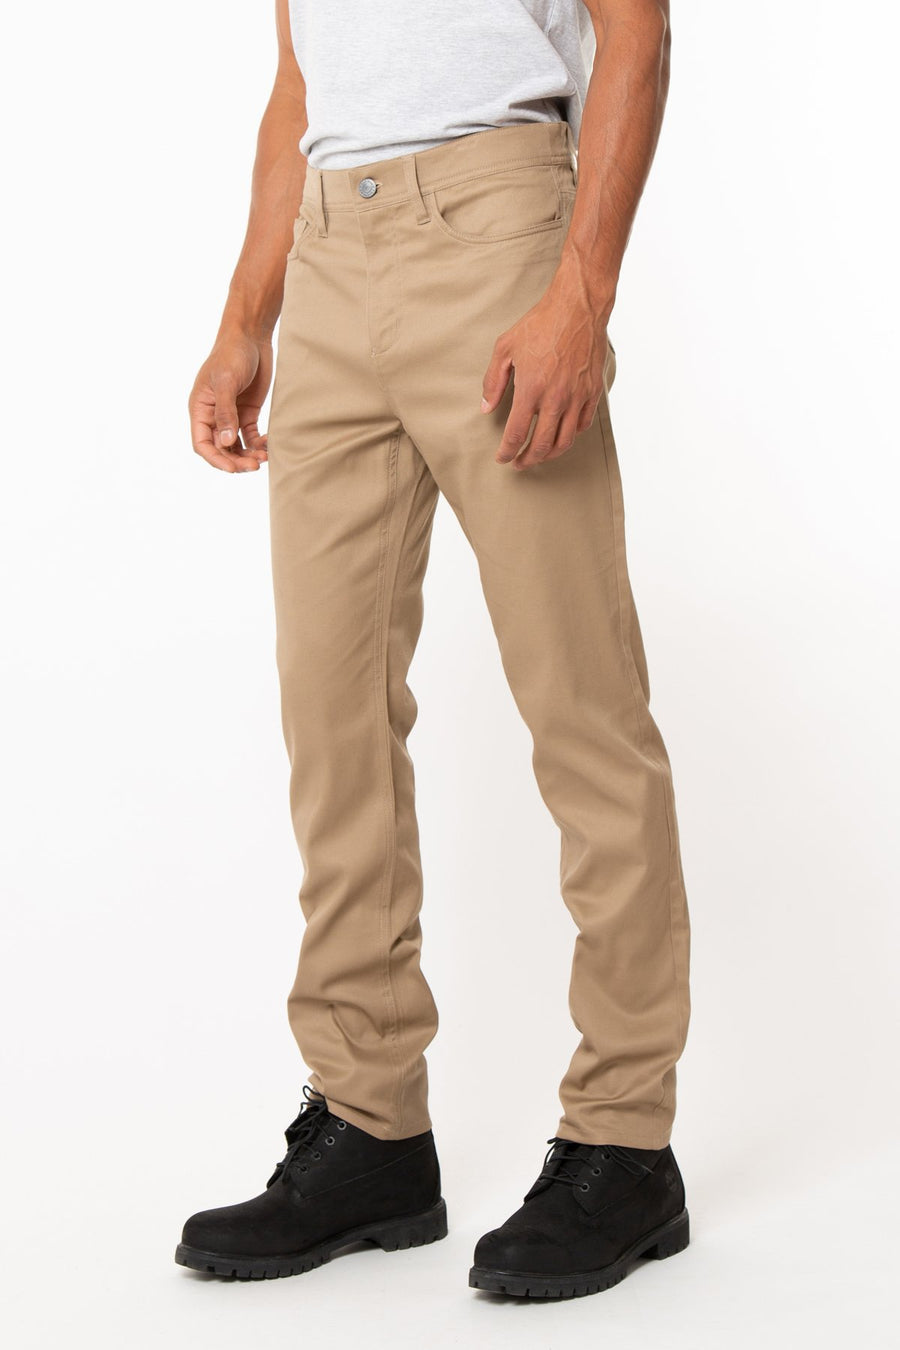 Workwear Pant With Security With Pocket